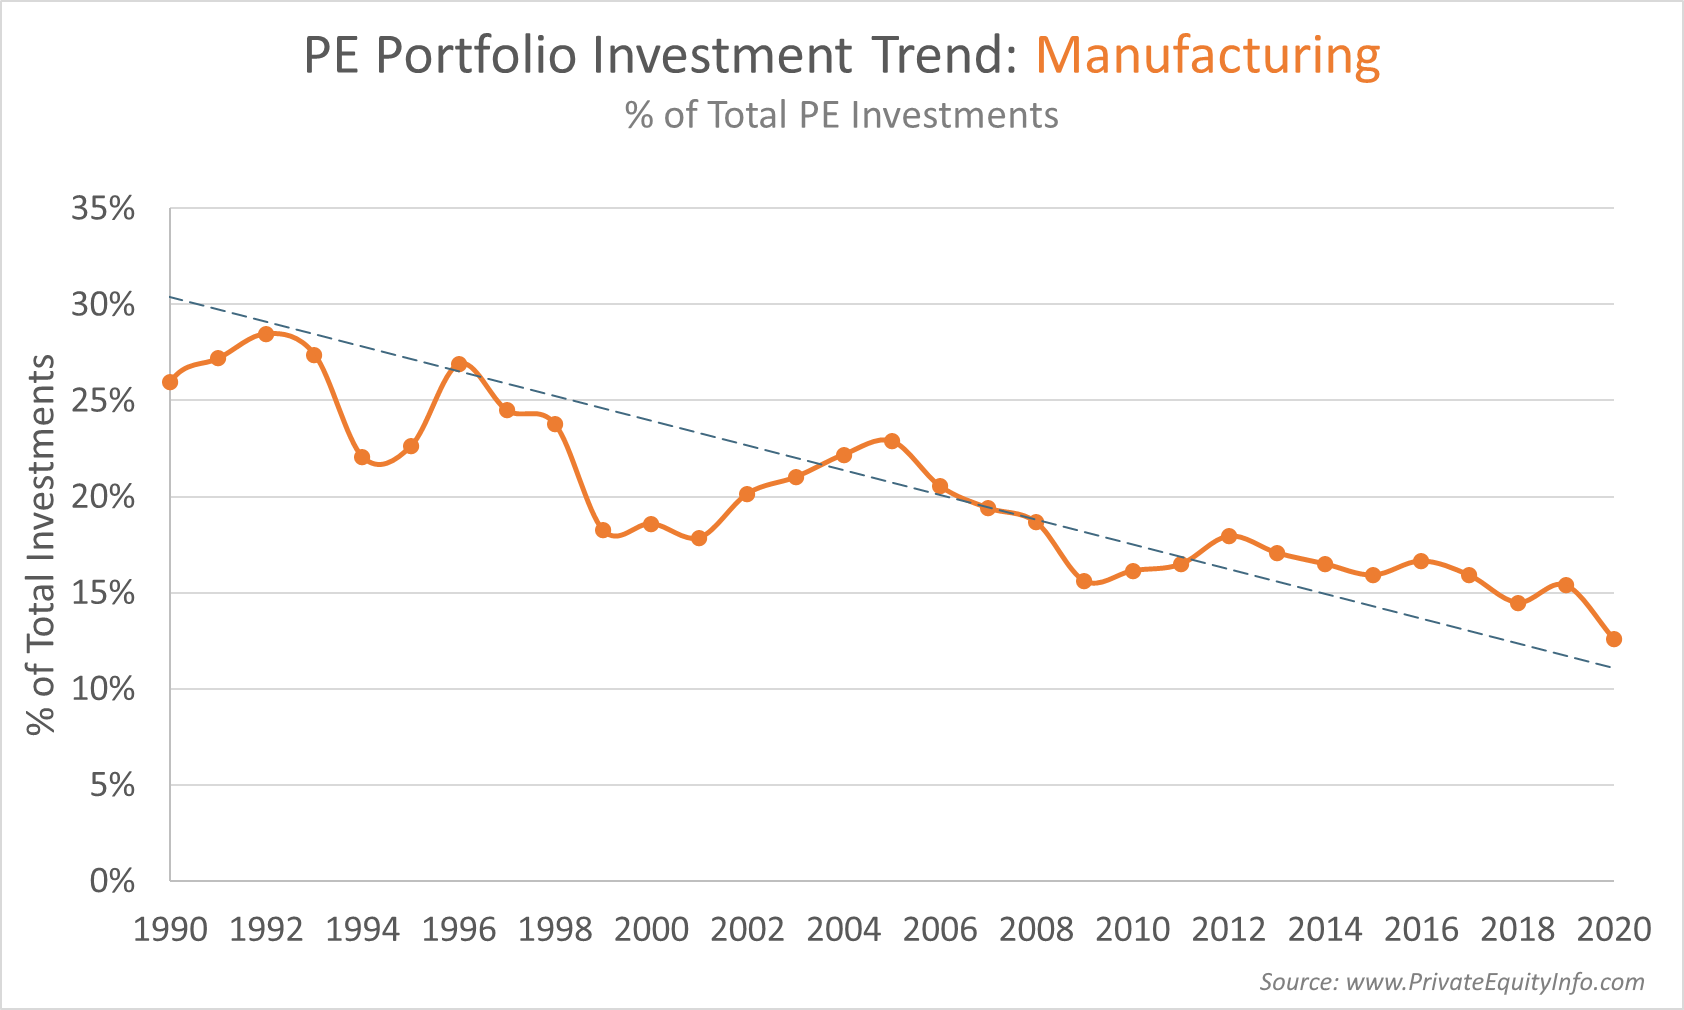 Private equity investment trends in manufacturing companies